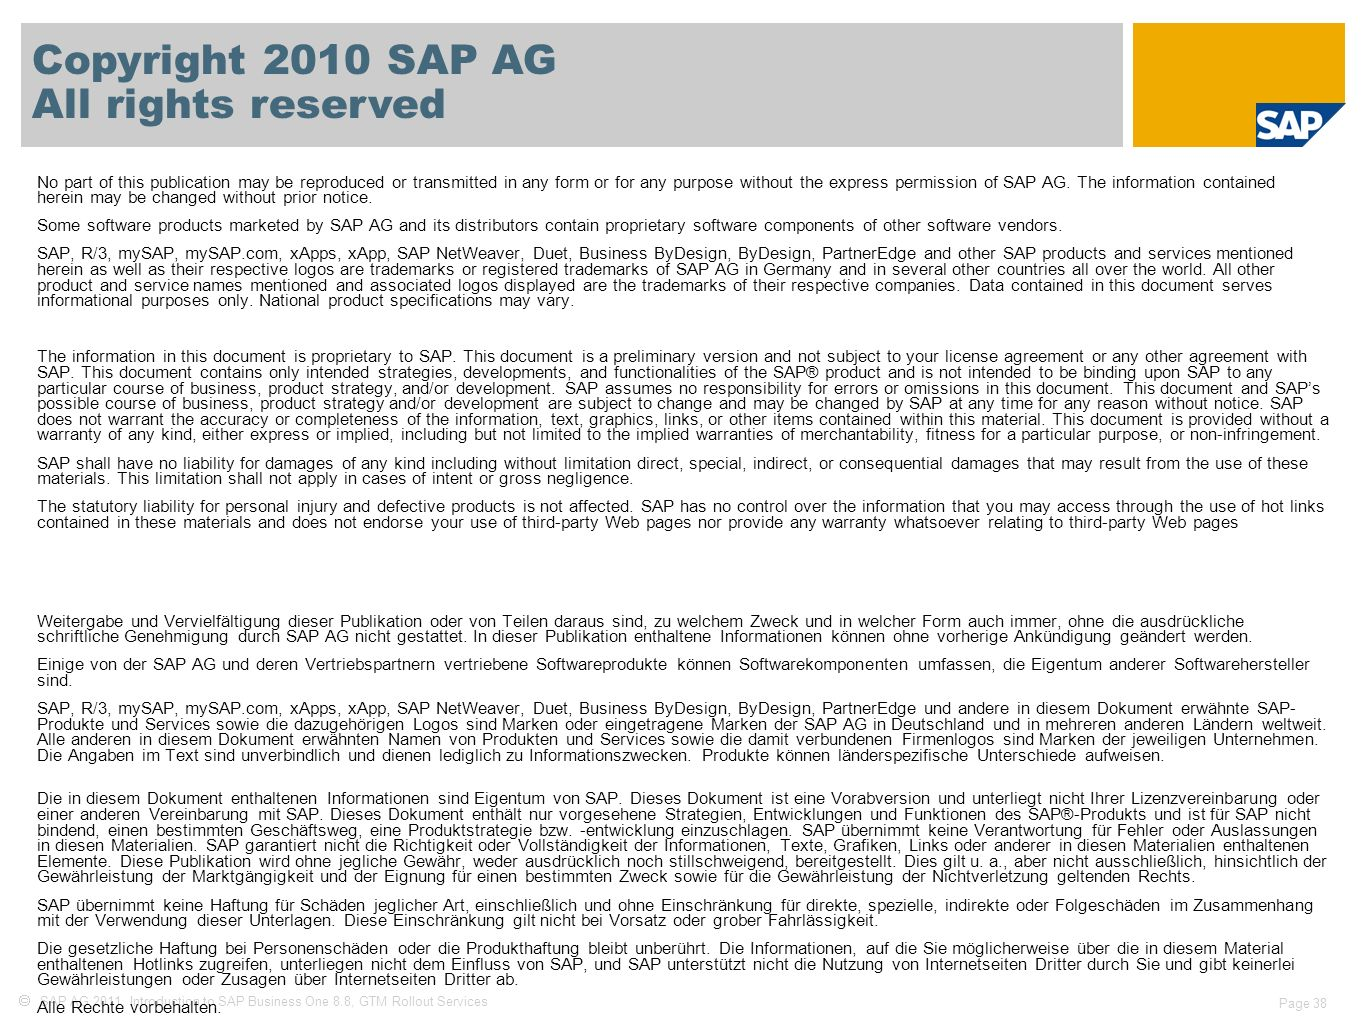  SAP AG 2011, Introduction to SAP Business One 8.8, GTM Rollout Services Page 38 Copyright 2010 SAP AG All rights reserved No part of this publicatio